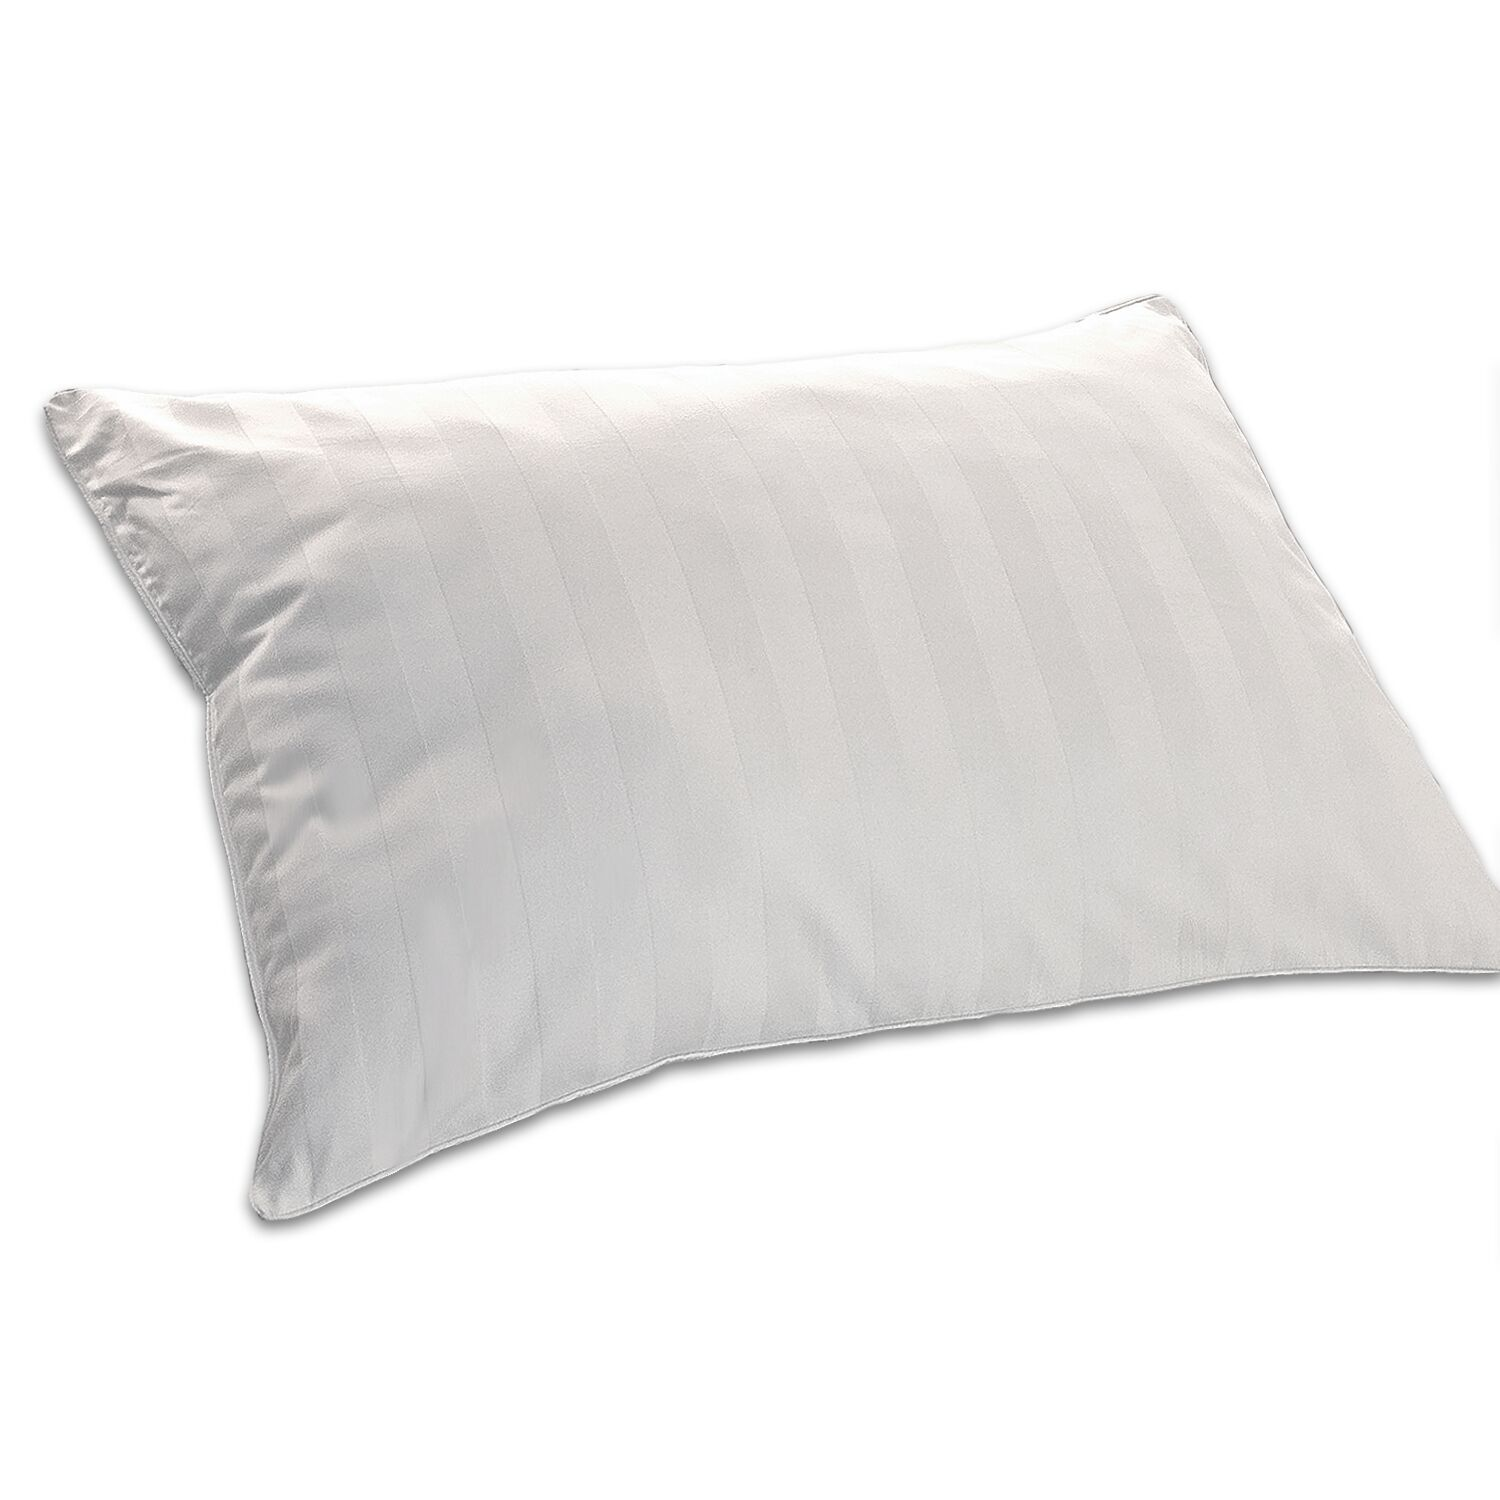 made for restful nights pillows online